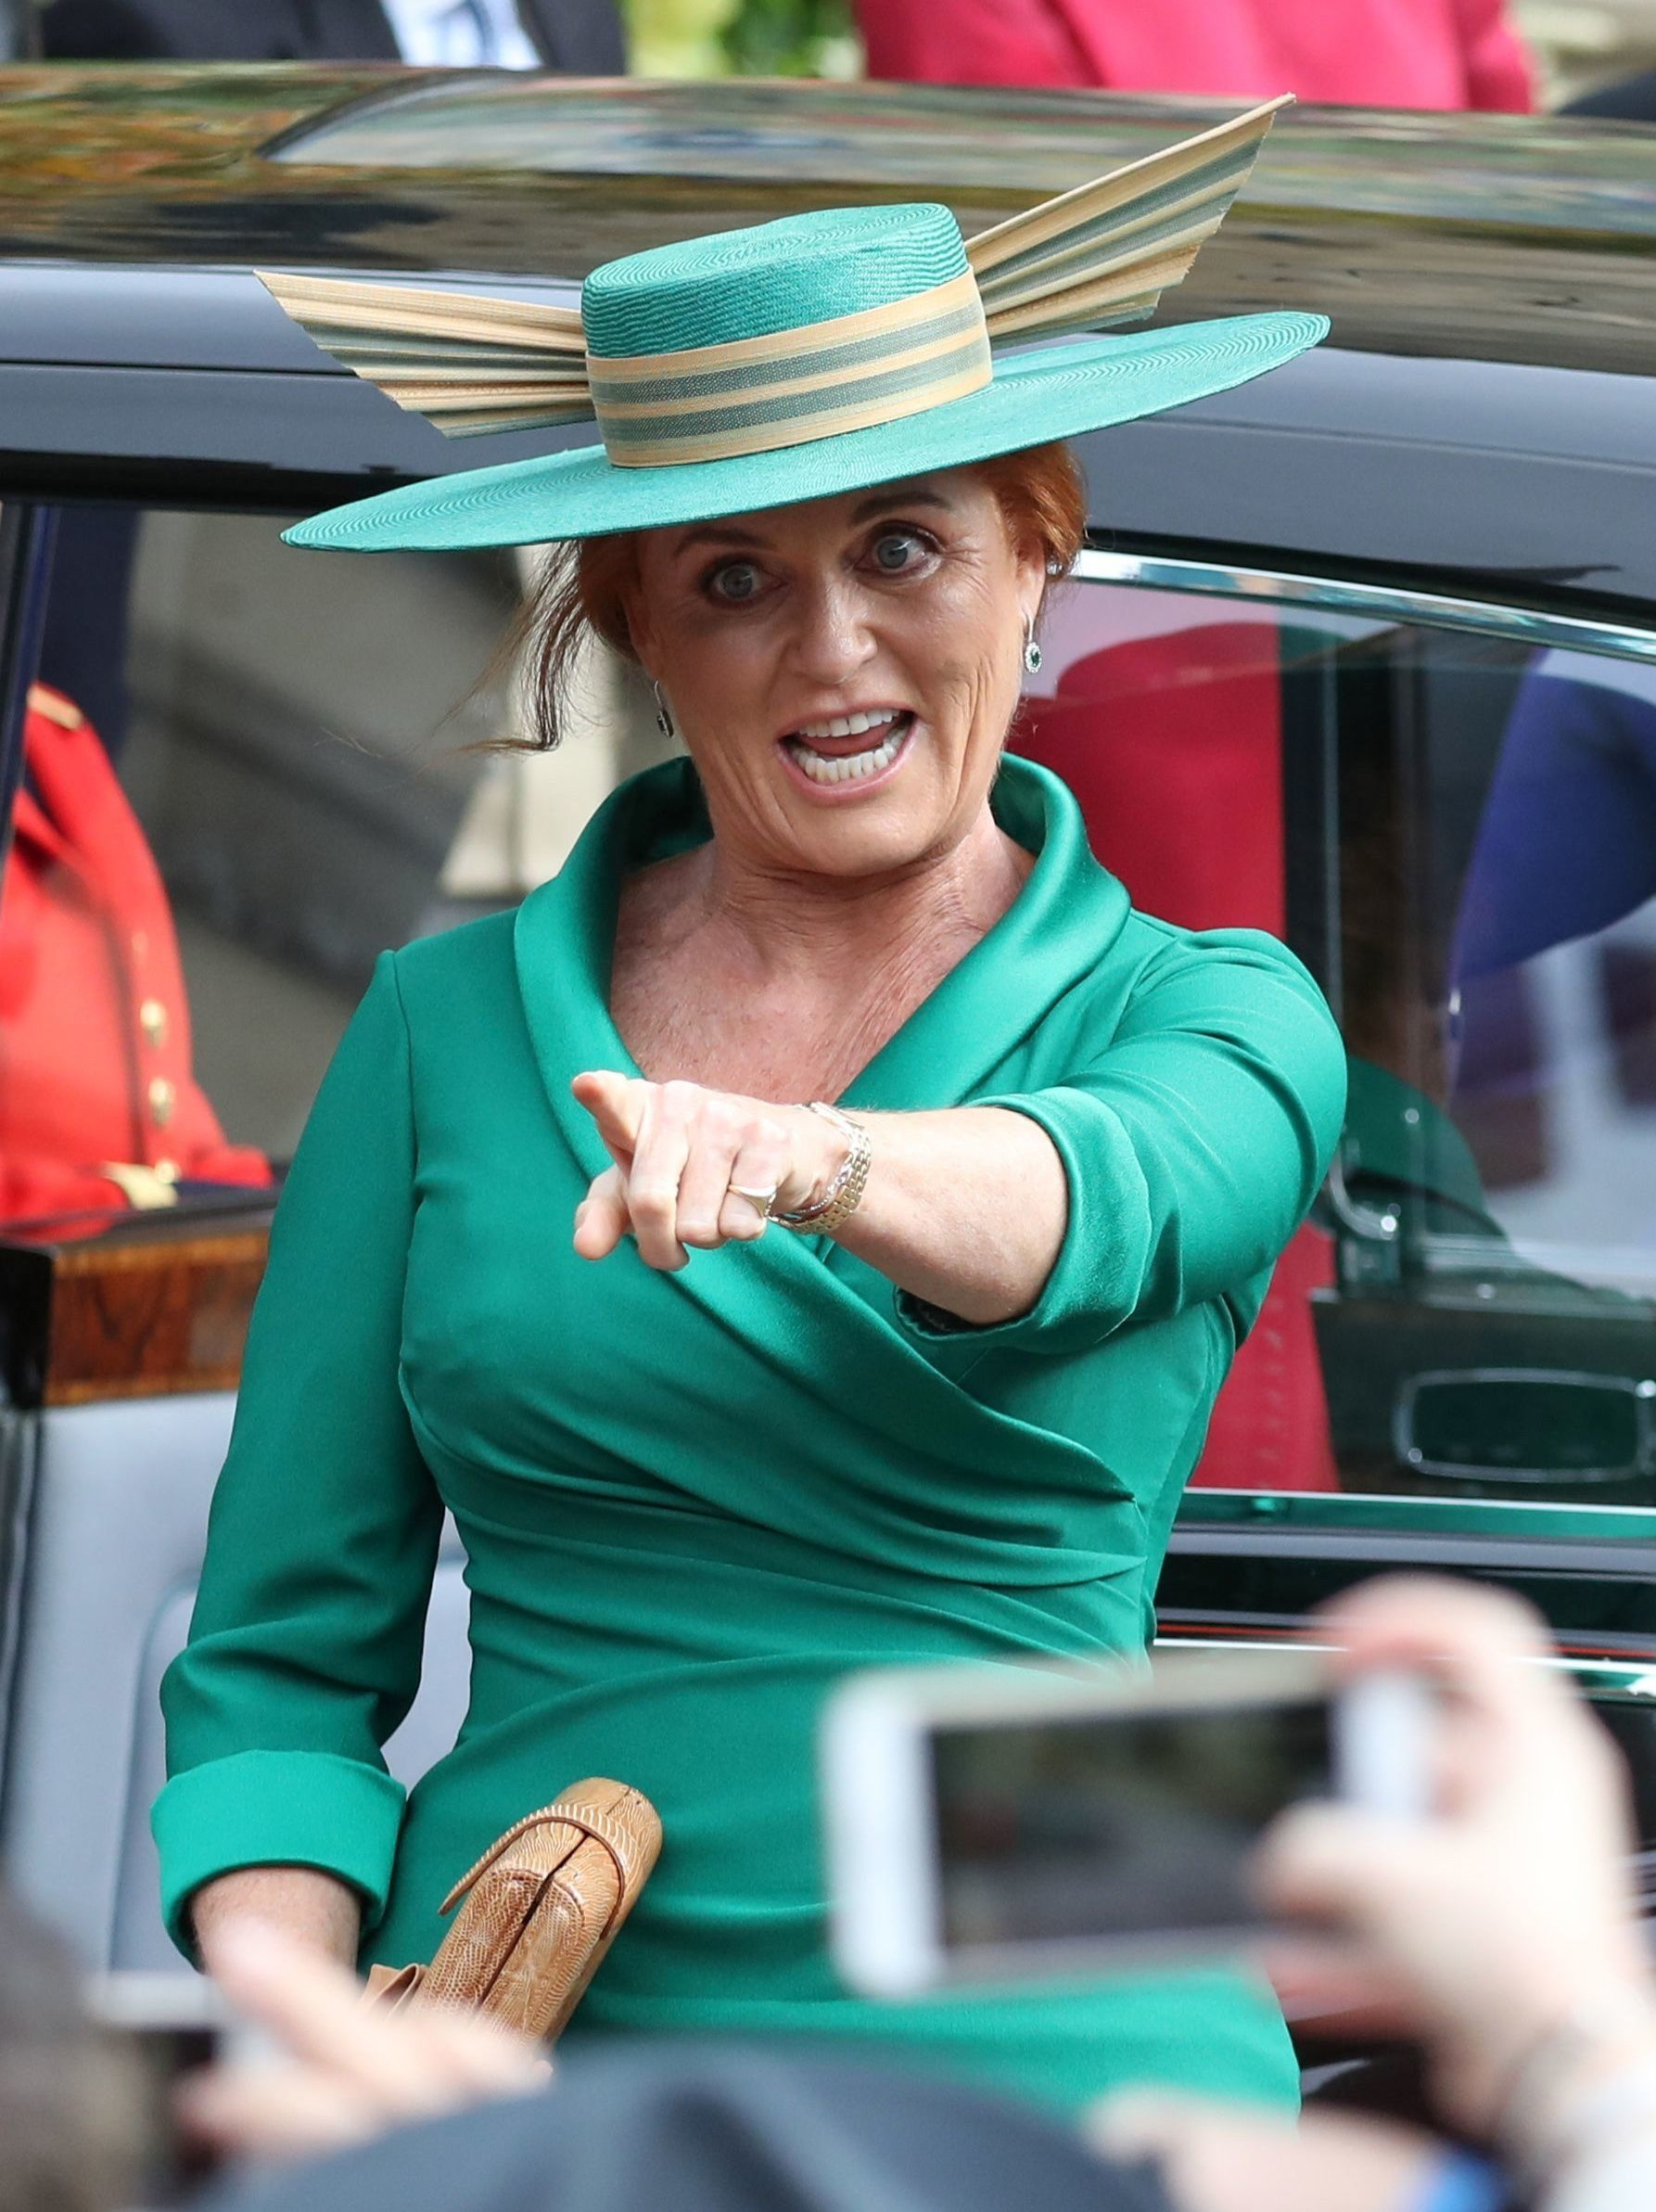 Sarah Ferguson's Royal Wedding Hat Looks Like The Golden Snitch From Harry